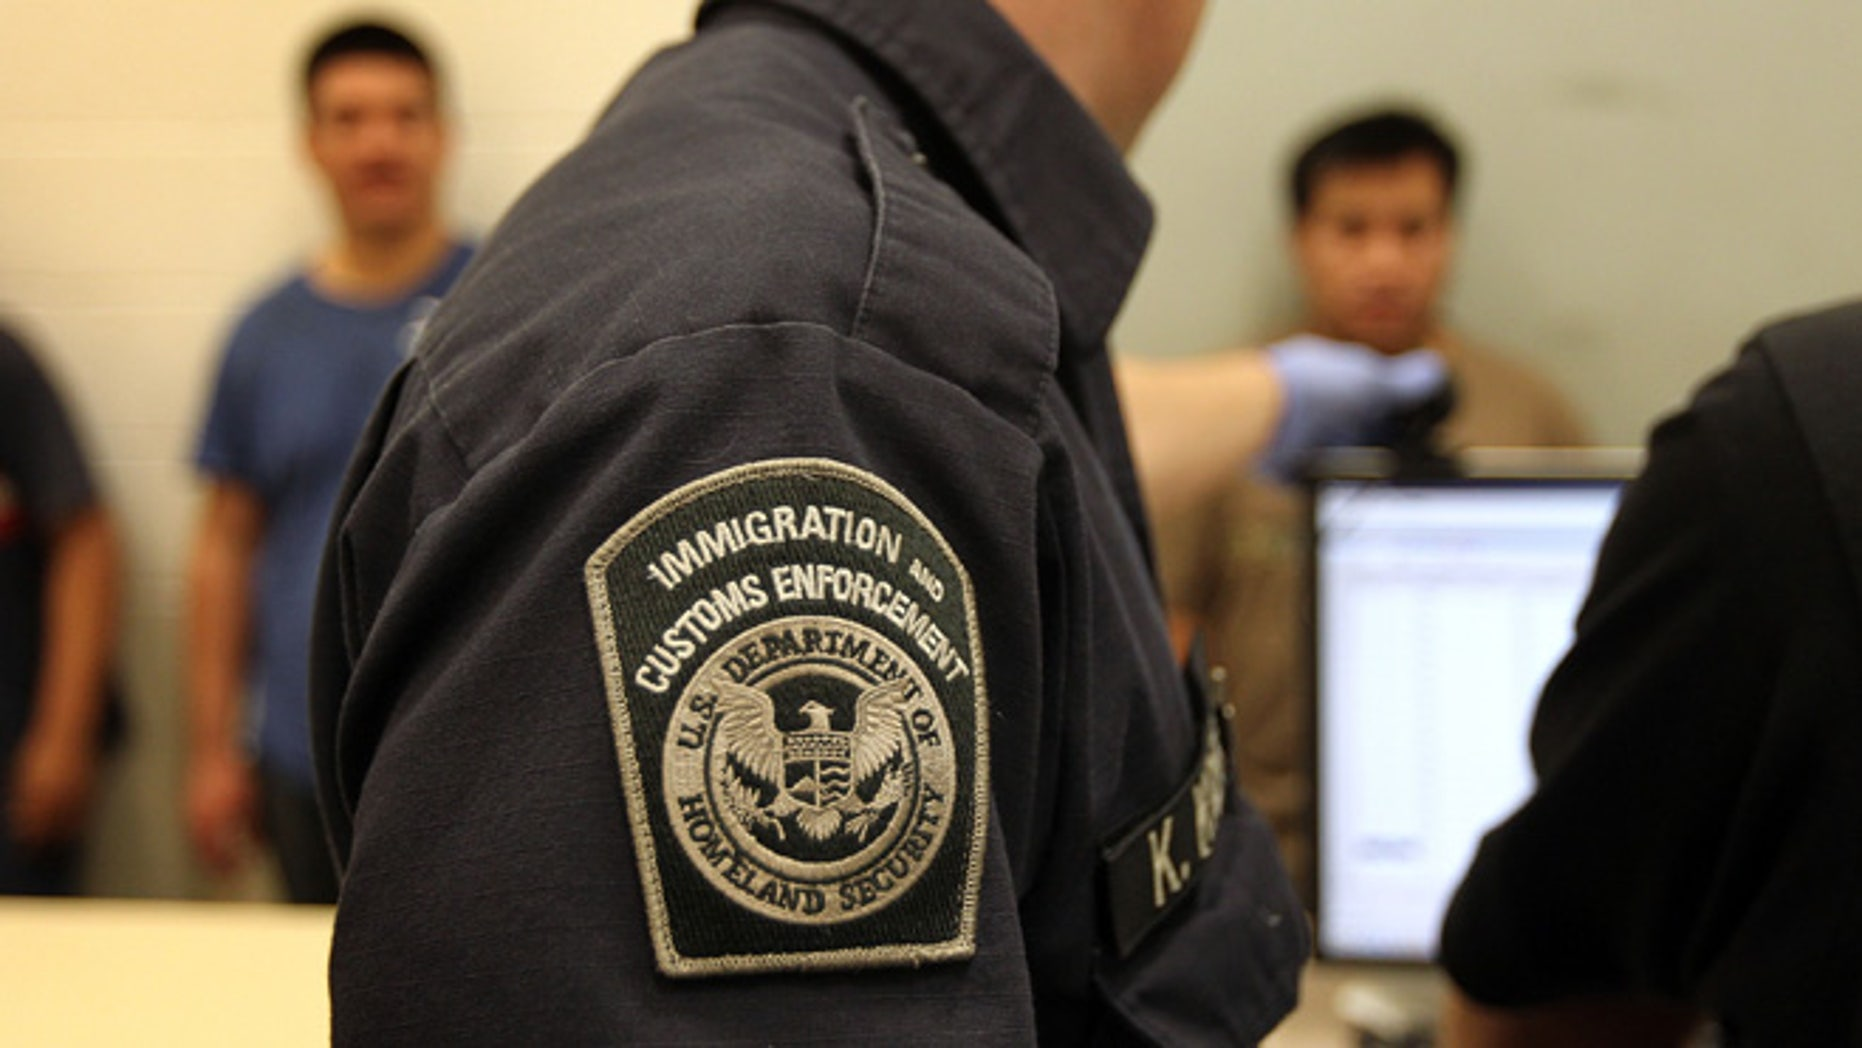 N J  immigration detention center ordered to pay workers